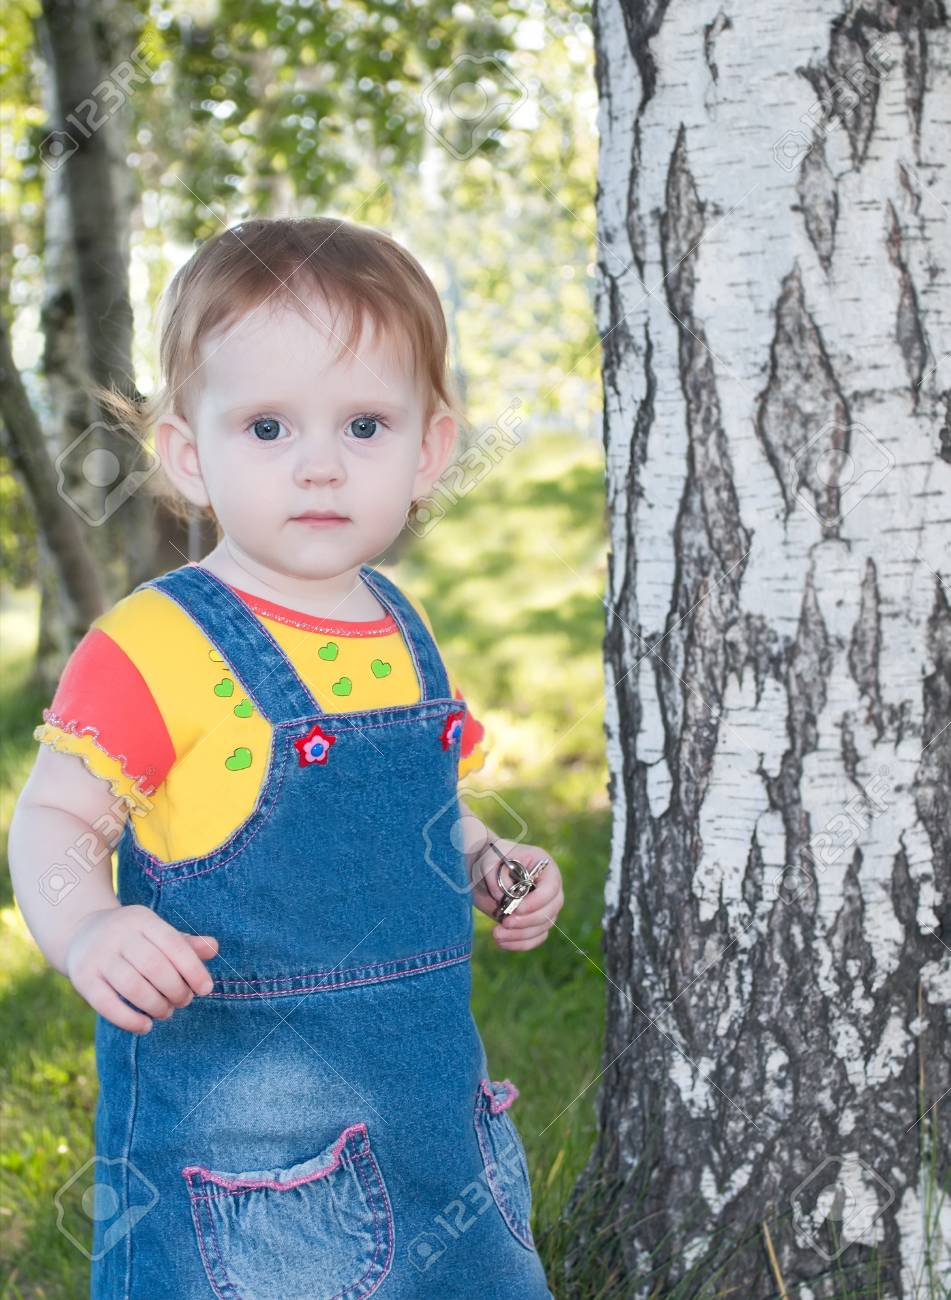 the little cute girl, standing a near birch tree Stock Photo - 17539414